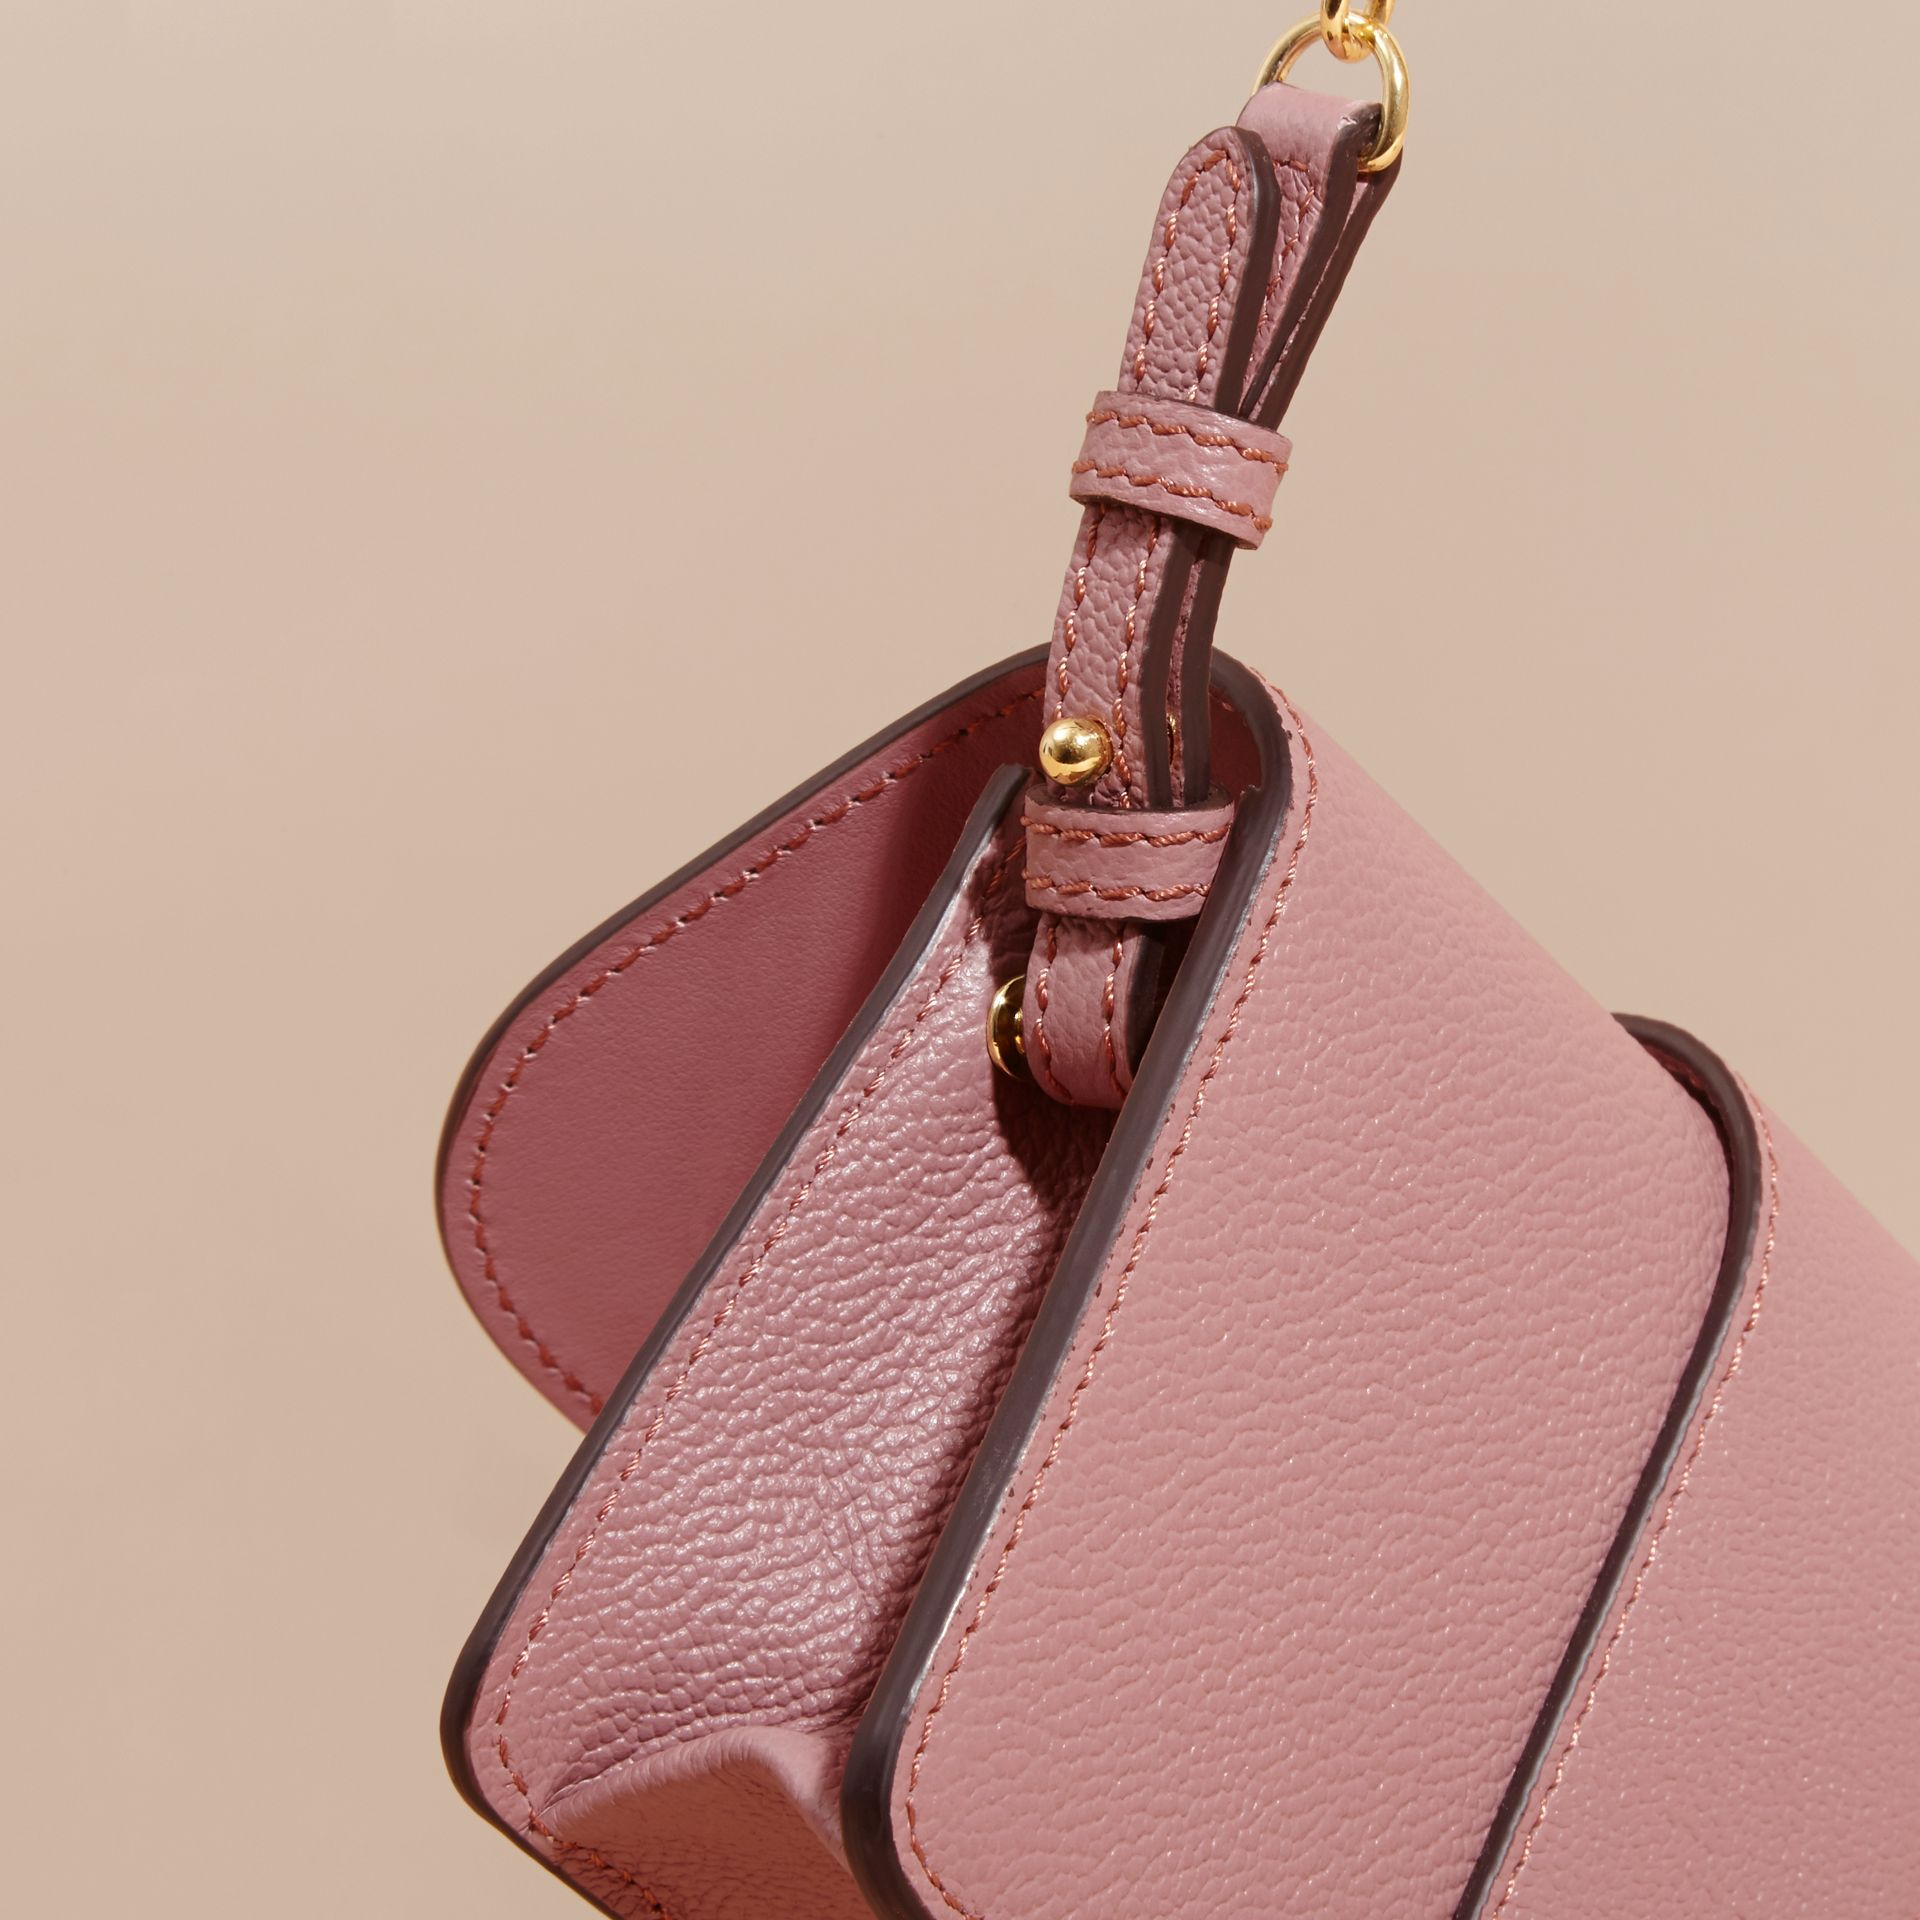 The Mini Buckle Bag in Grainy Leather in Dusty Pink - Women | Burberry - gallery image 6